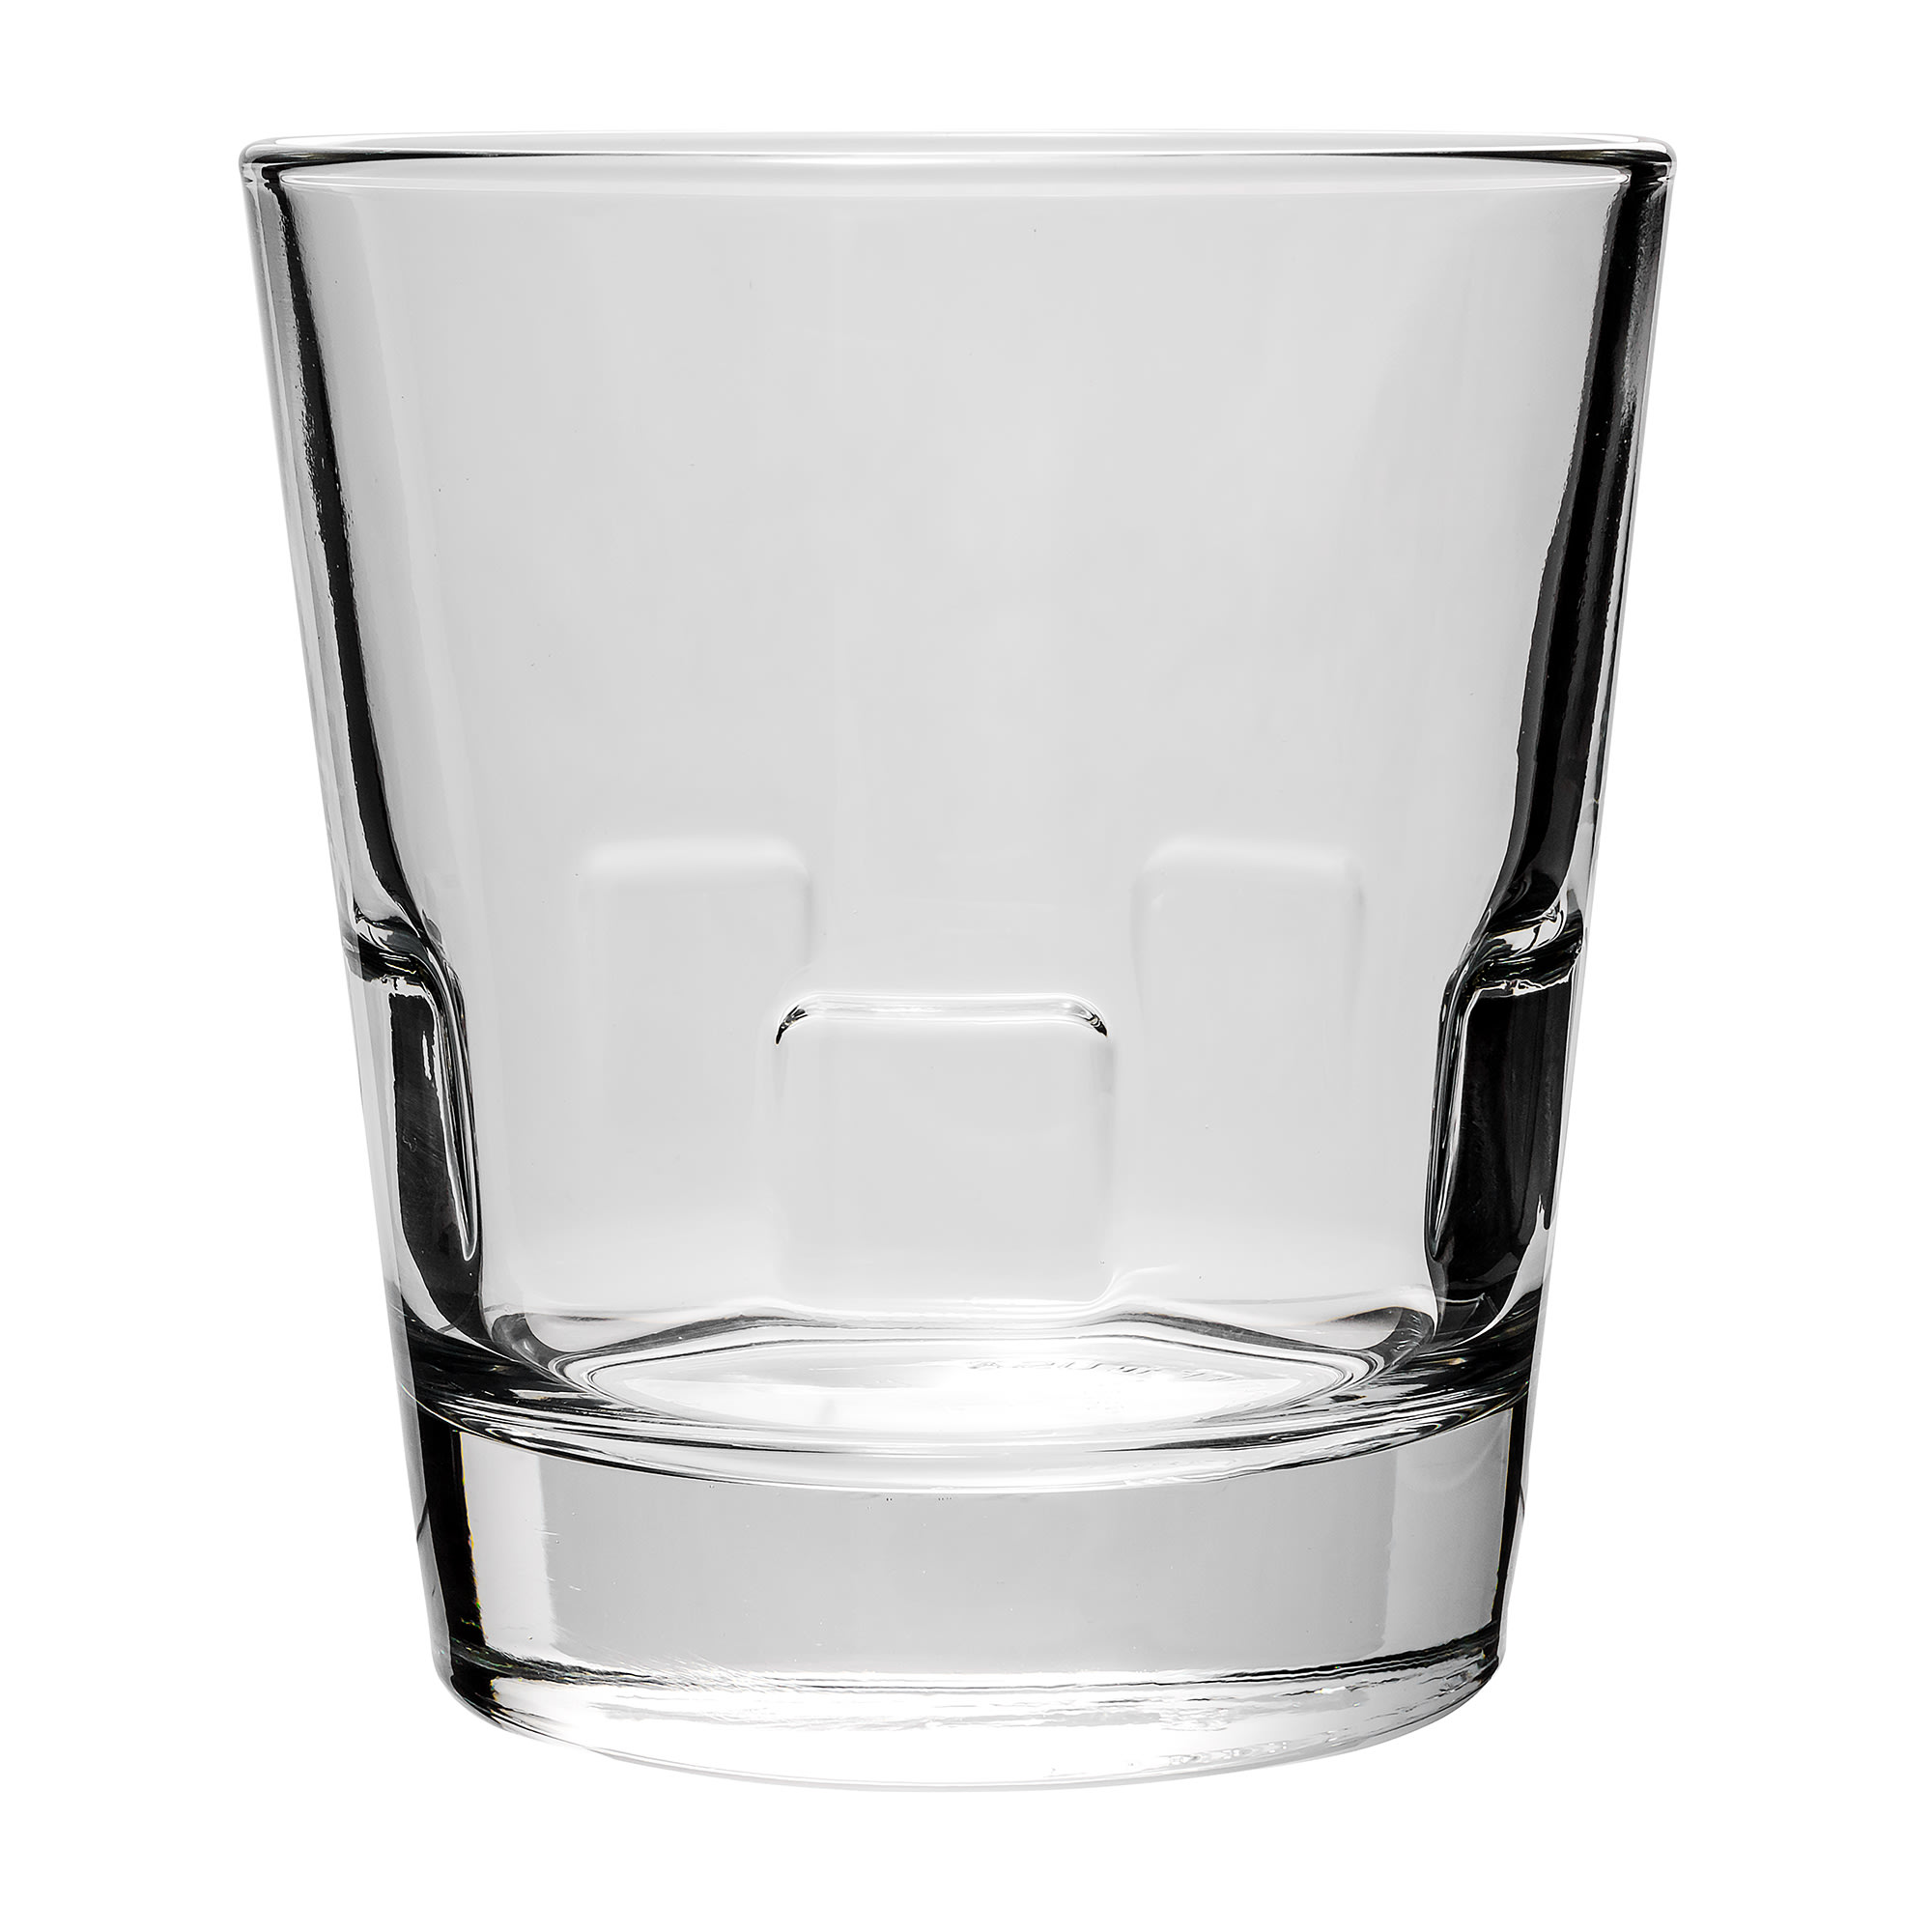 Libbey 15962 10 oz Rocks Glass - Optiva, Stackable